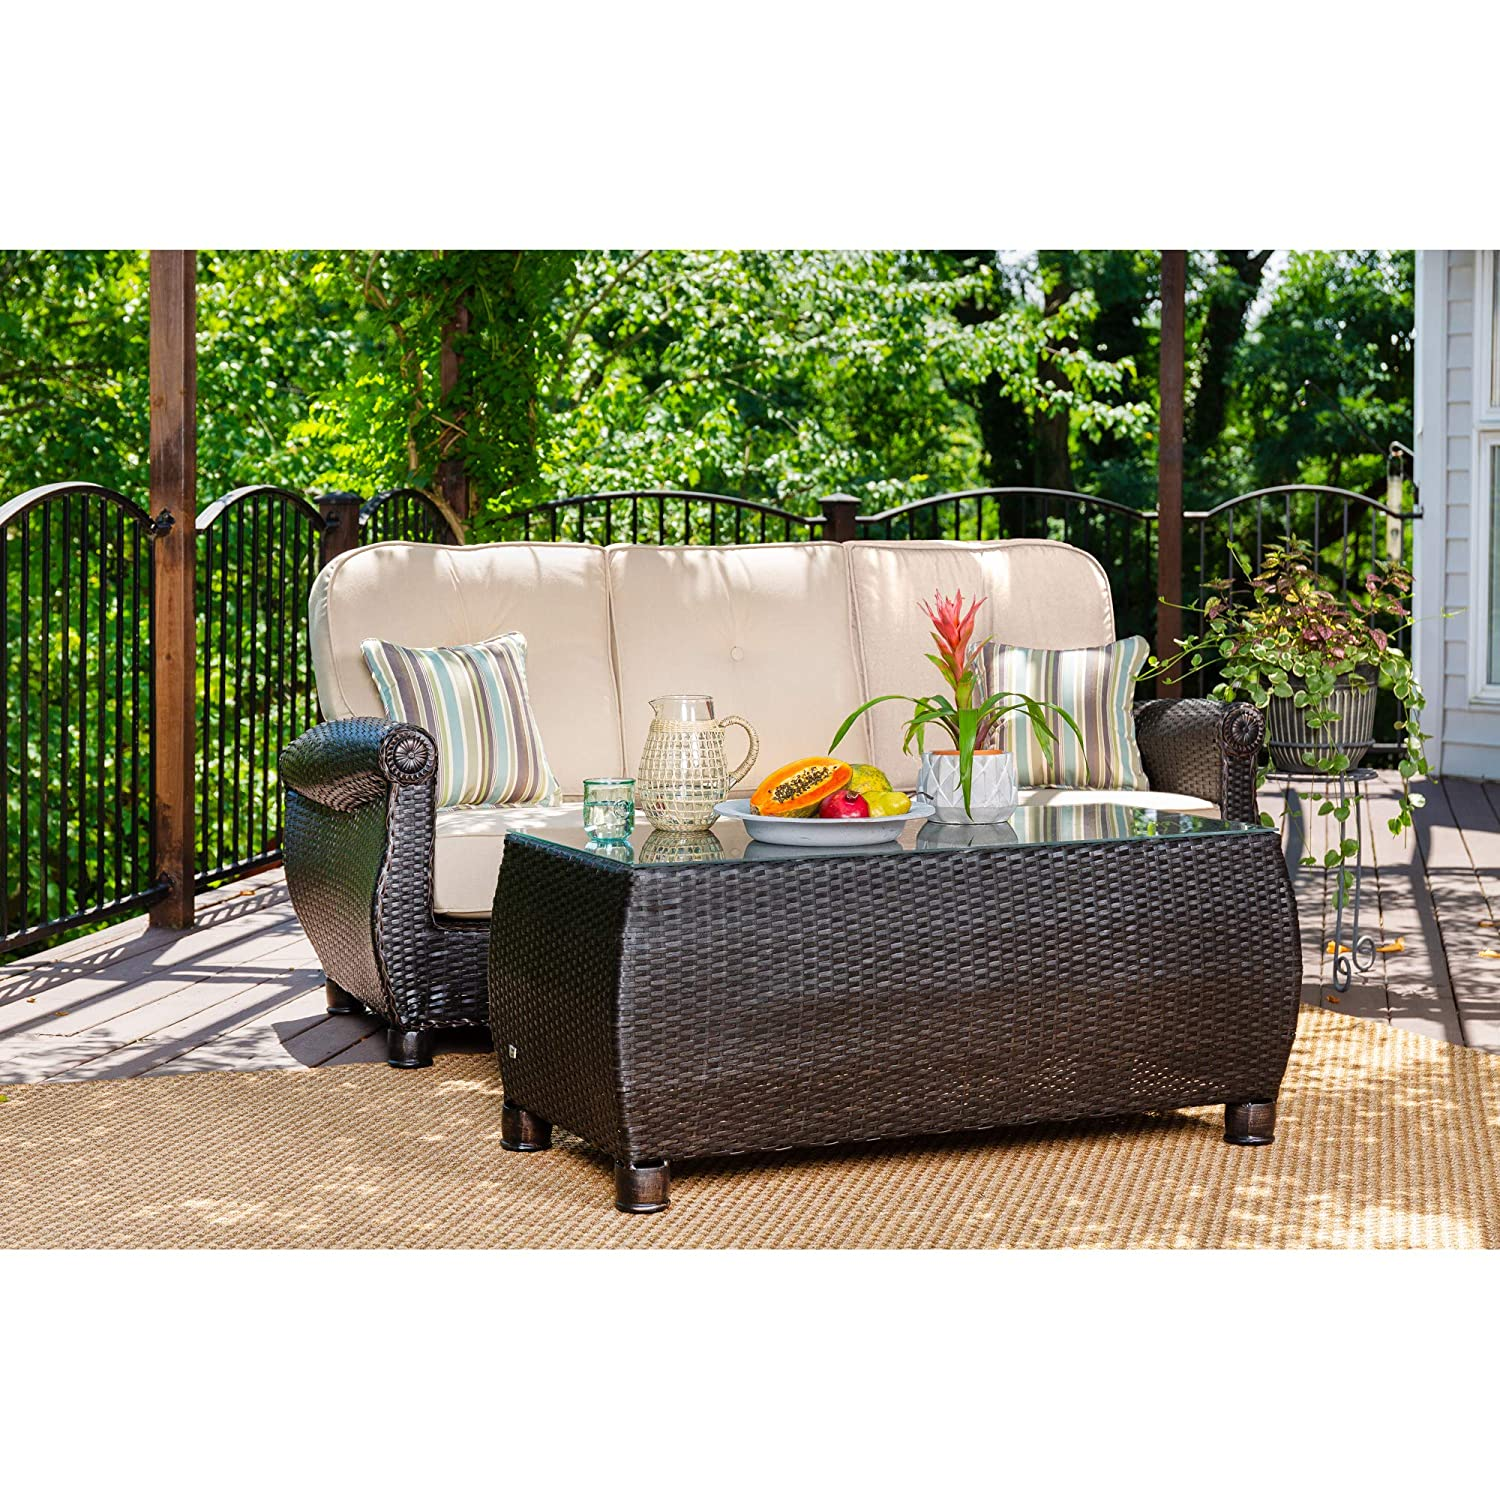 Amazon com la z boy outdoor breckenridge resin wicker patio furniture sofa with pillows and coffee table set natural tan with all weather sunbrella